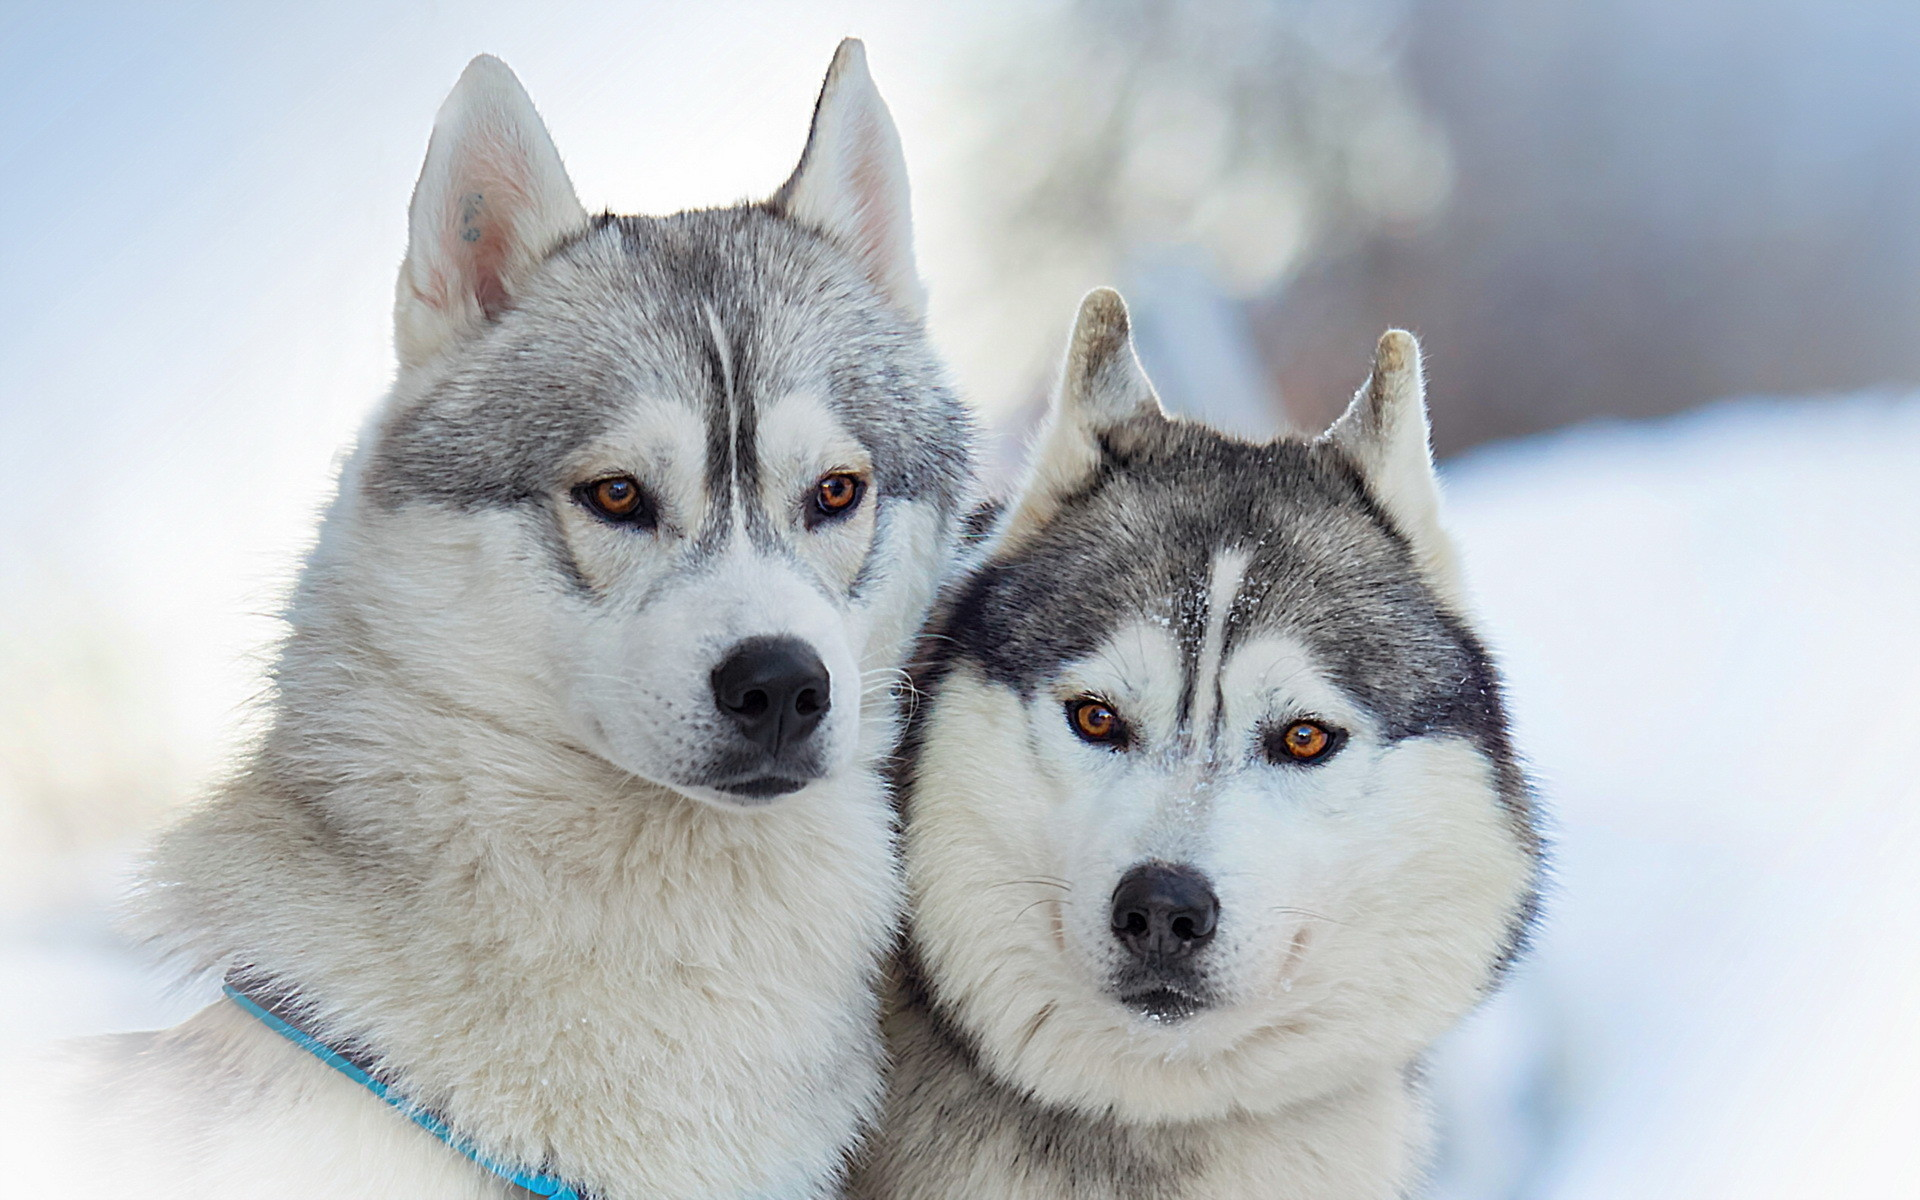 Portrait of Alaskan Malamutes wallpapers and images – wallpapers .